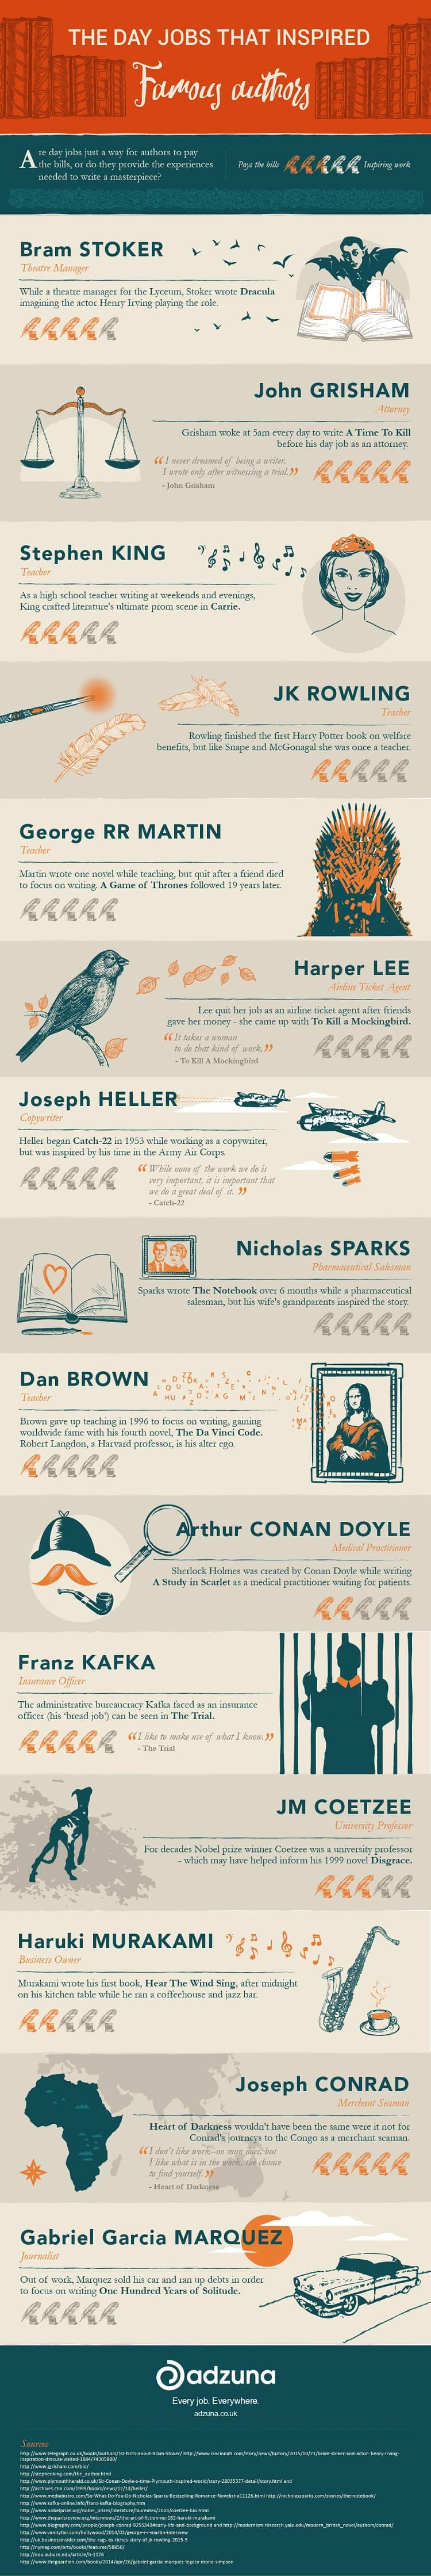 15-famous-authors-and-jobs